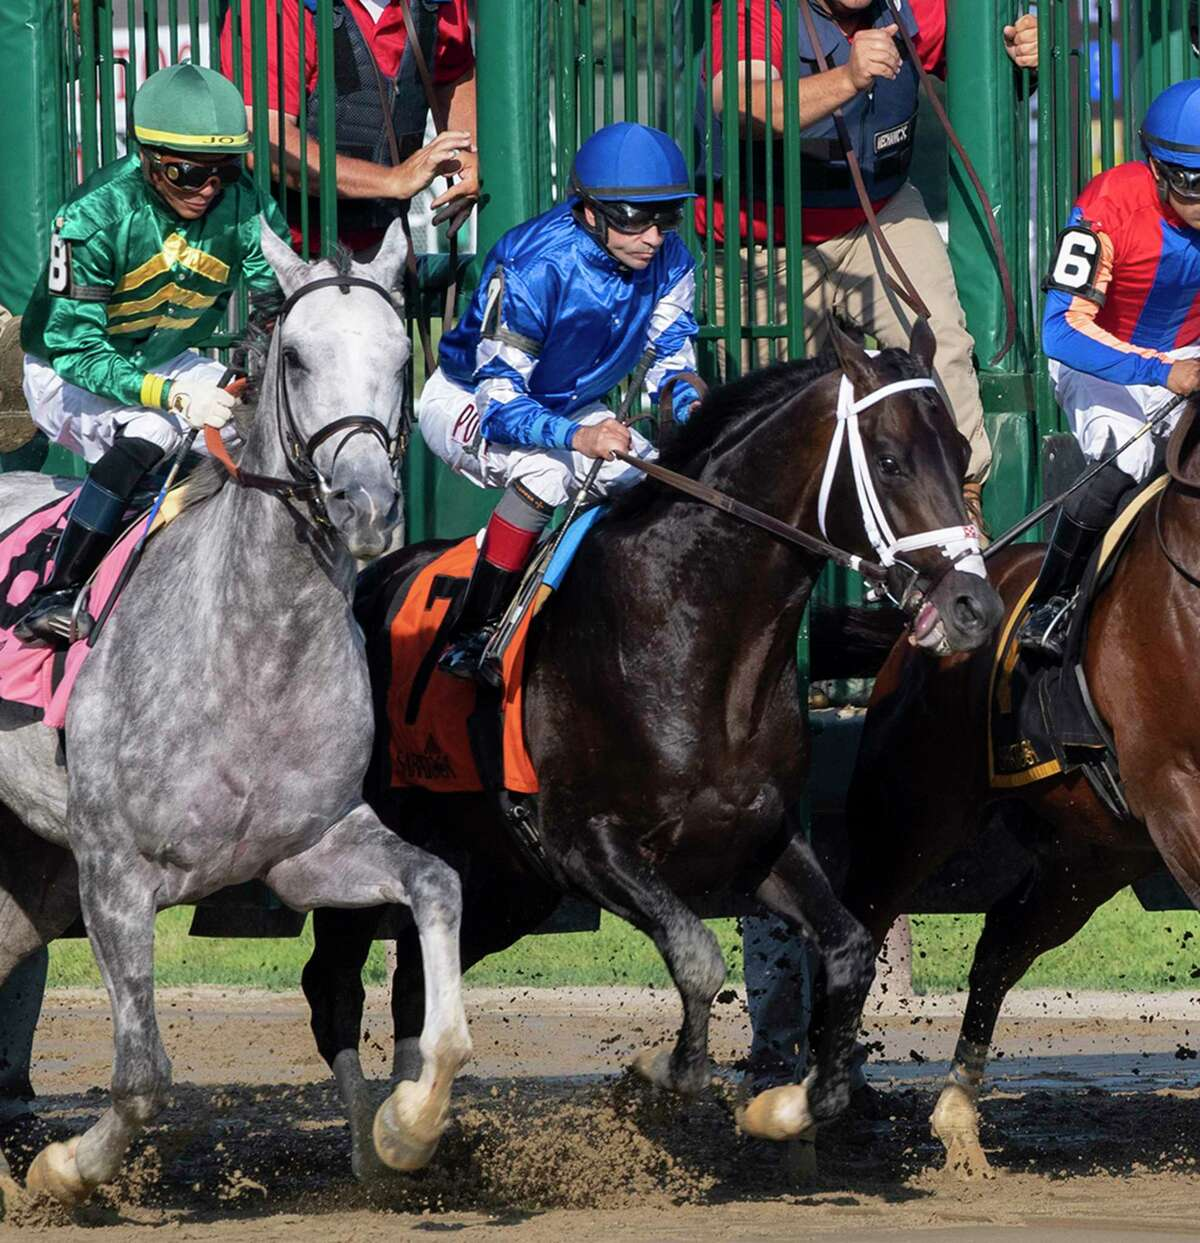 The field in the 11th running of The Curlin leaves the gate at the Saratoga Race Course Friday July 26, 2019 in Saratoga Springs, N.Y. Endorsed #7, right finished second to Highest Honors, left. Photo special to the Times Union by Skip Dickstein